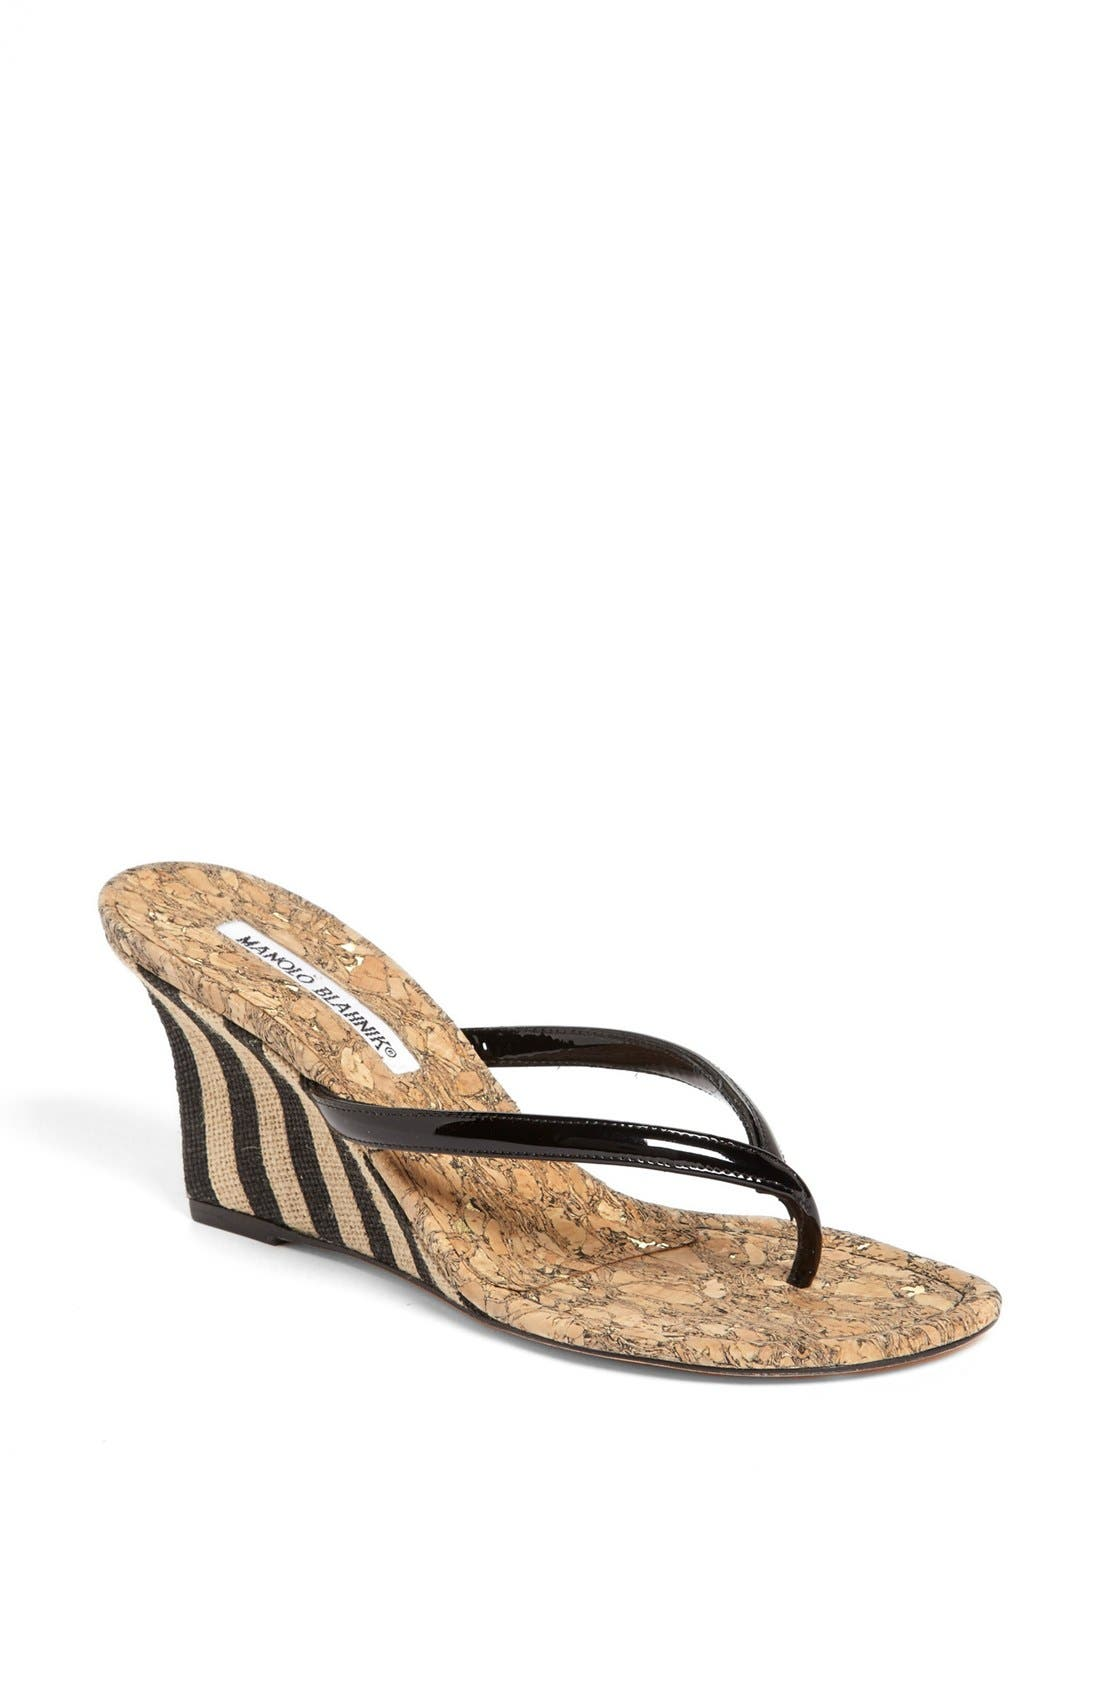 shop for sale buy cheap new styles Manolo Blahnik Slingback Wedge Sandals ulpOohITv